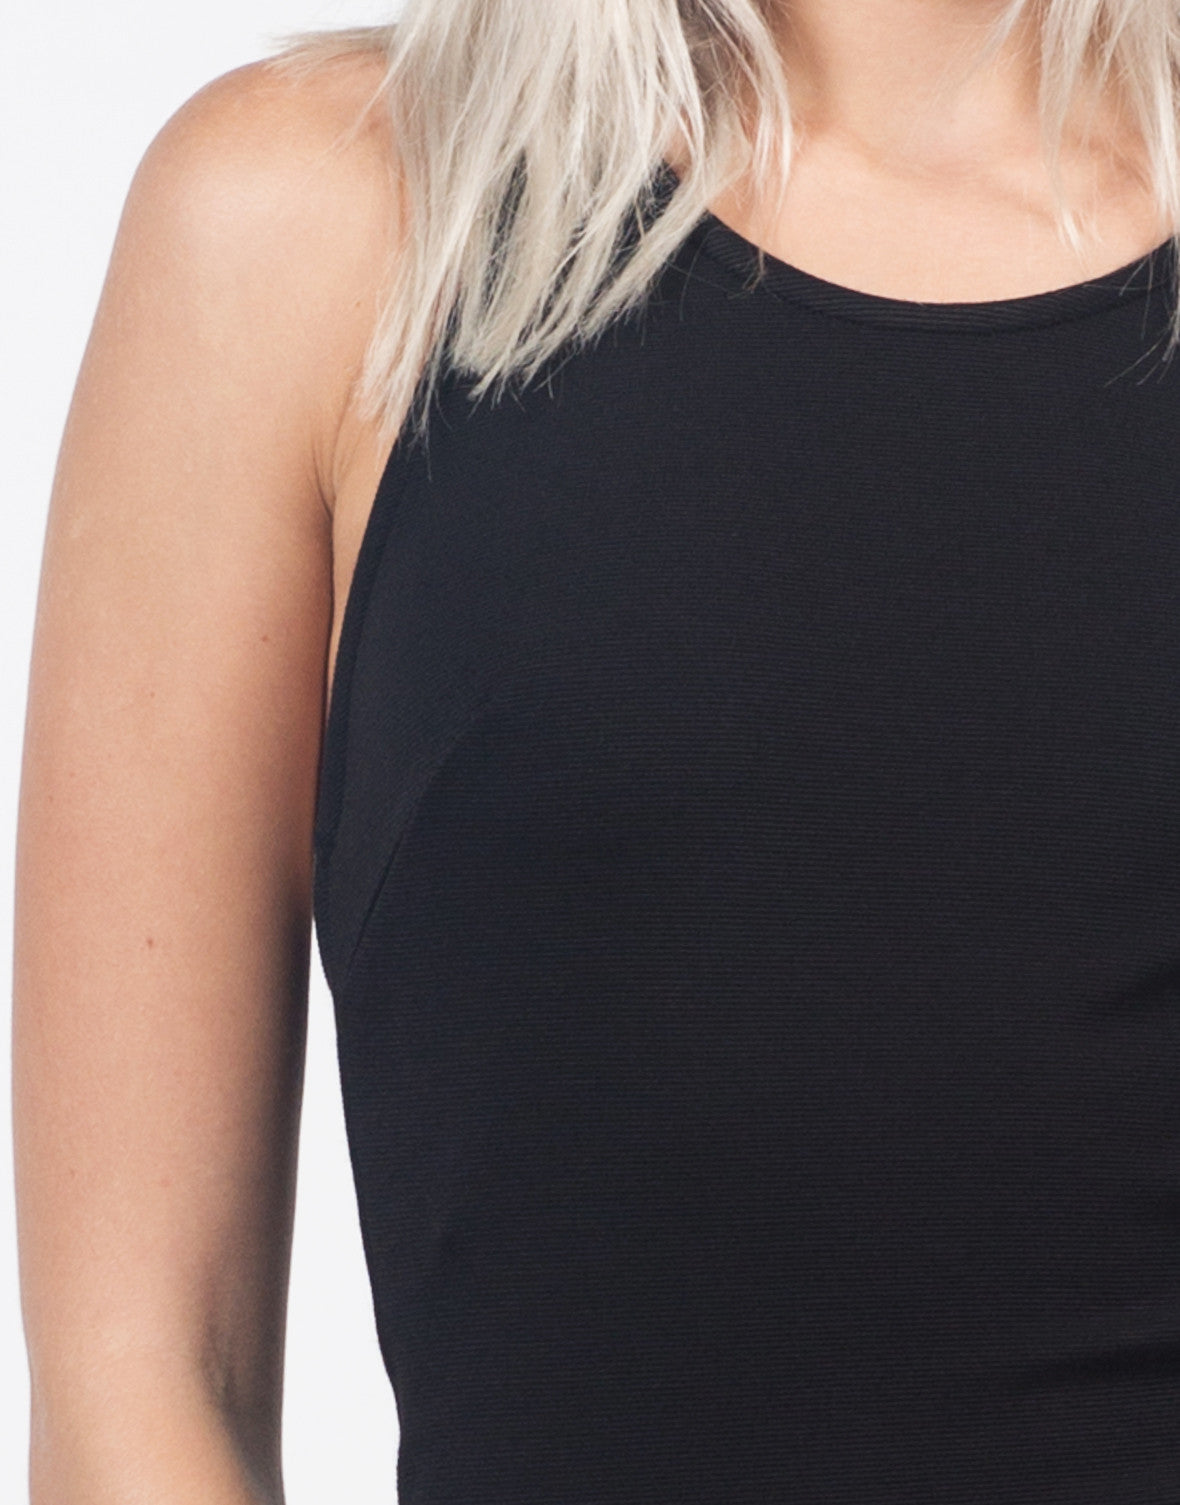 Detail of Strappy Back Textured Dress